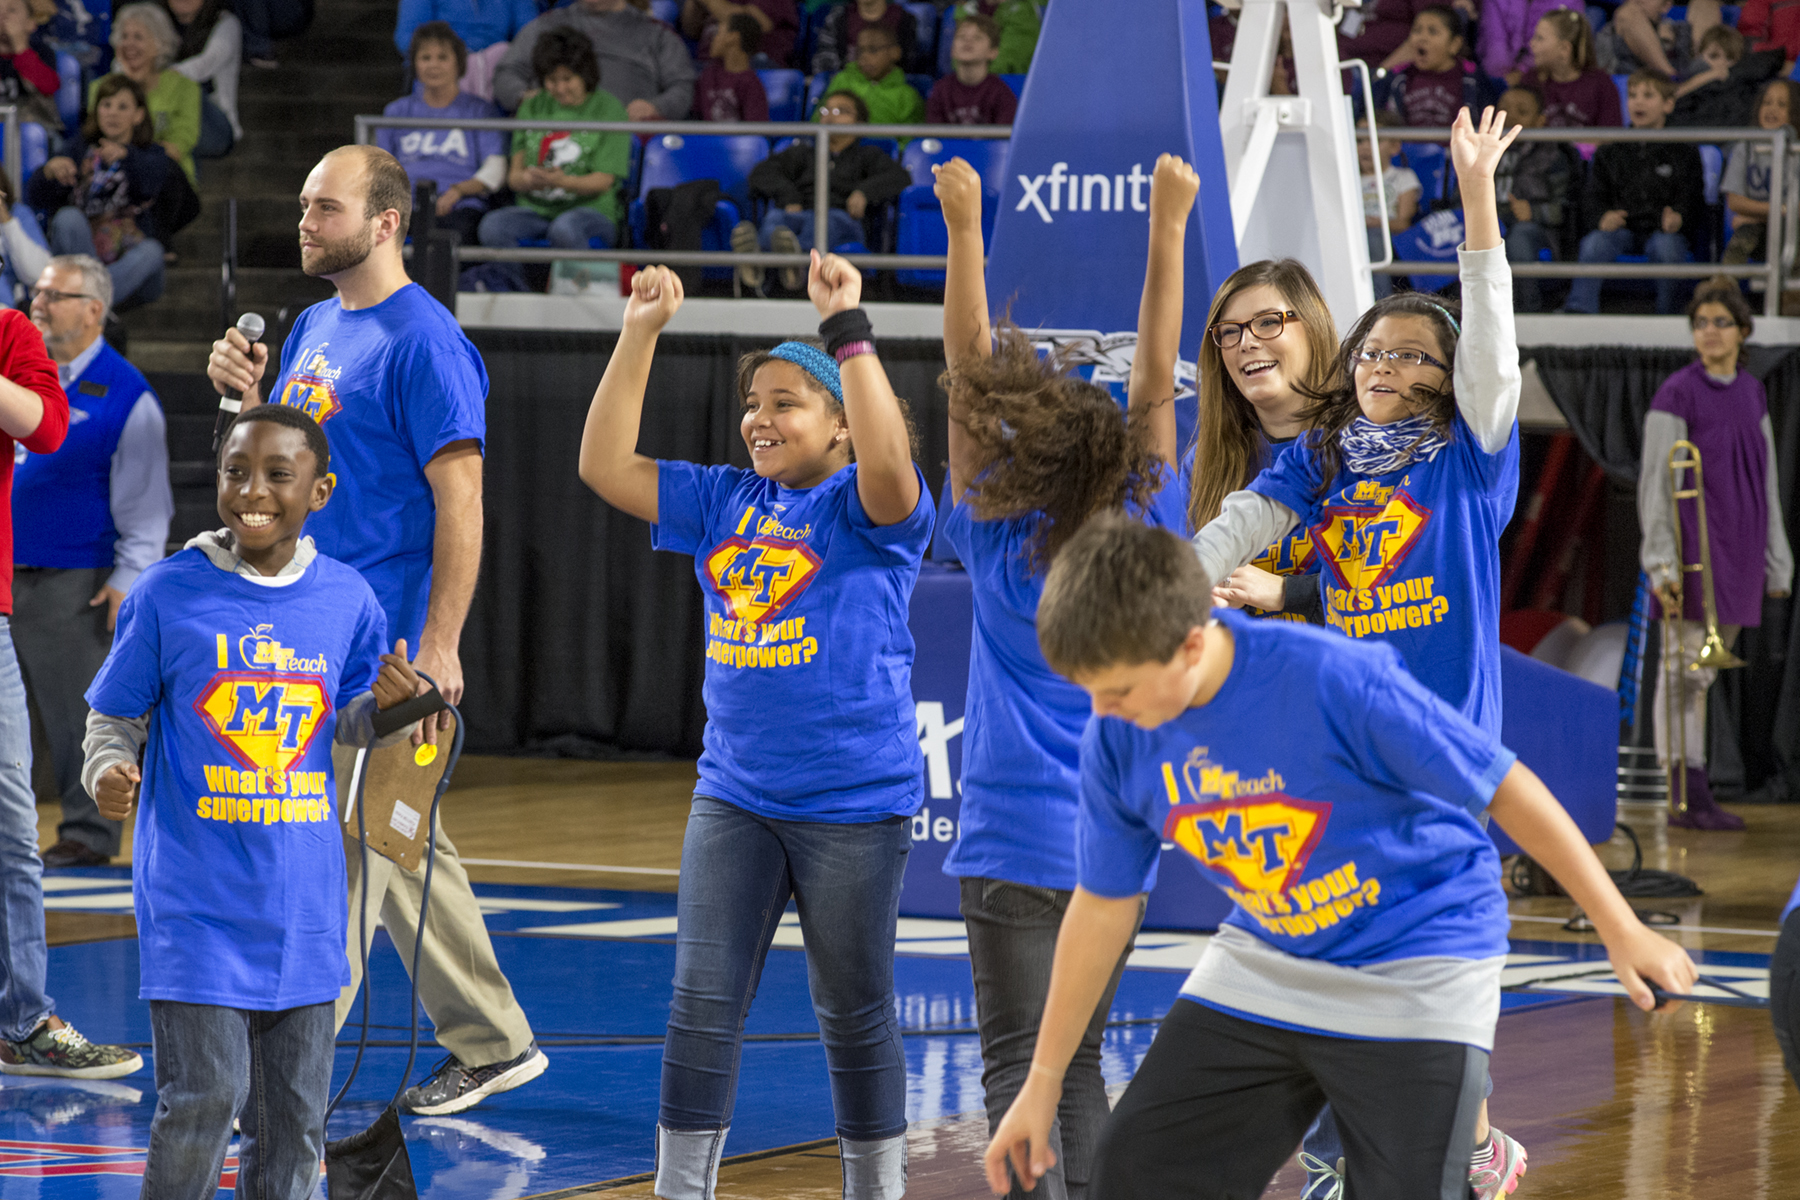 7,300 Elementary School Students to attend MTSU Basketball Game